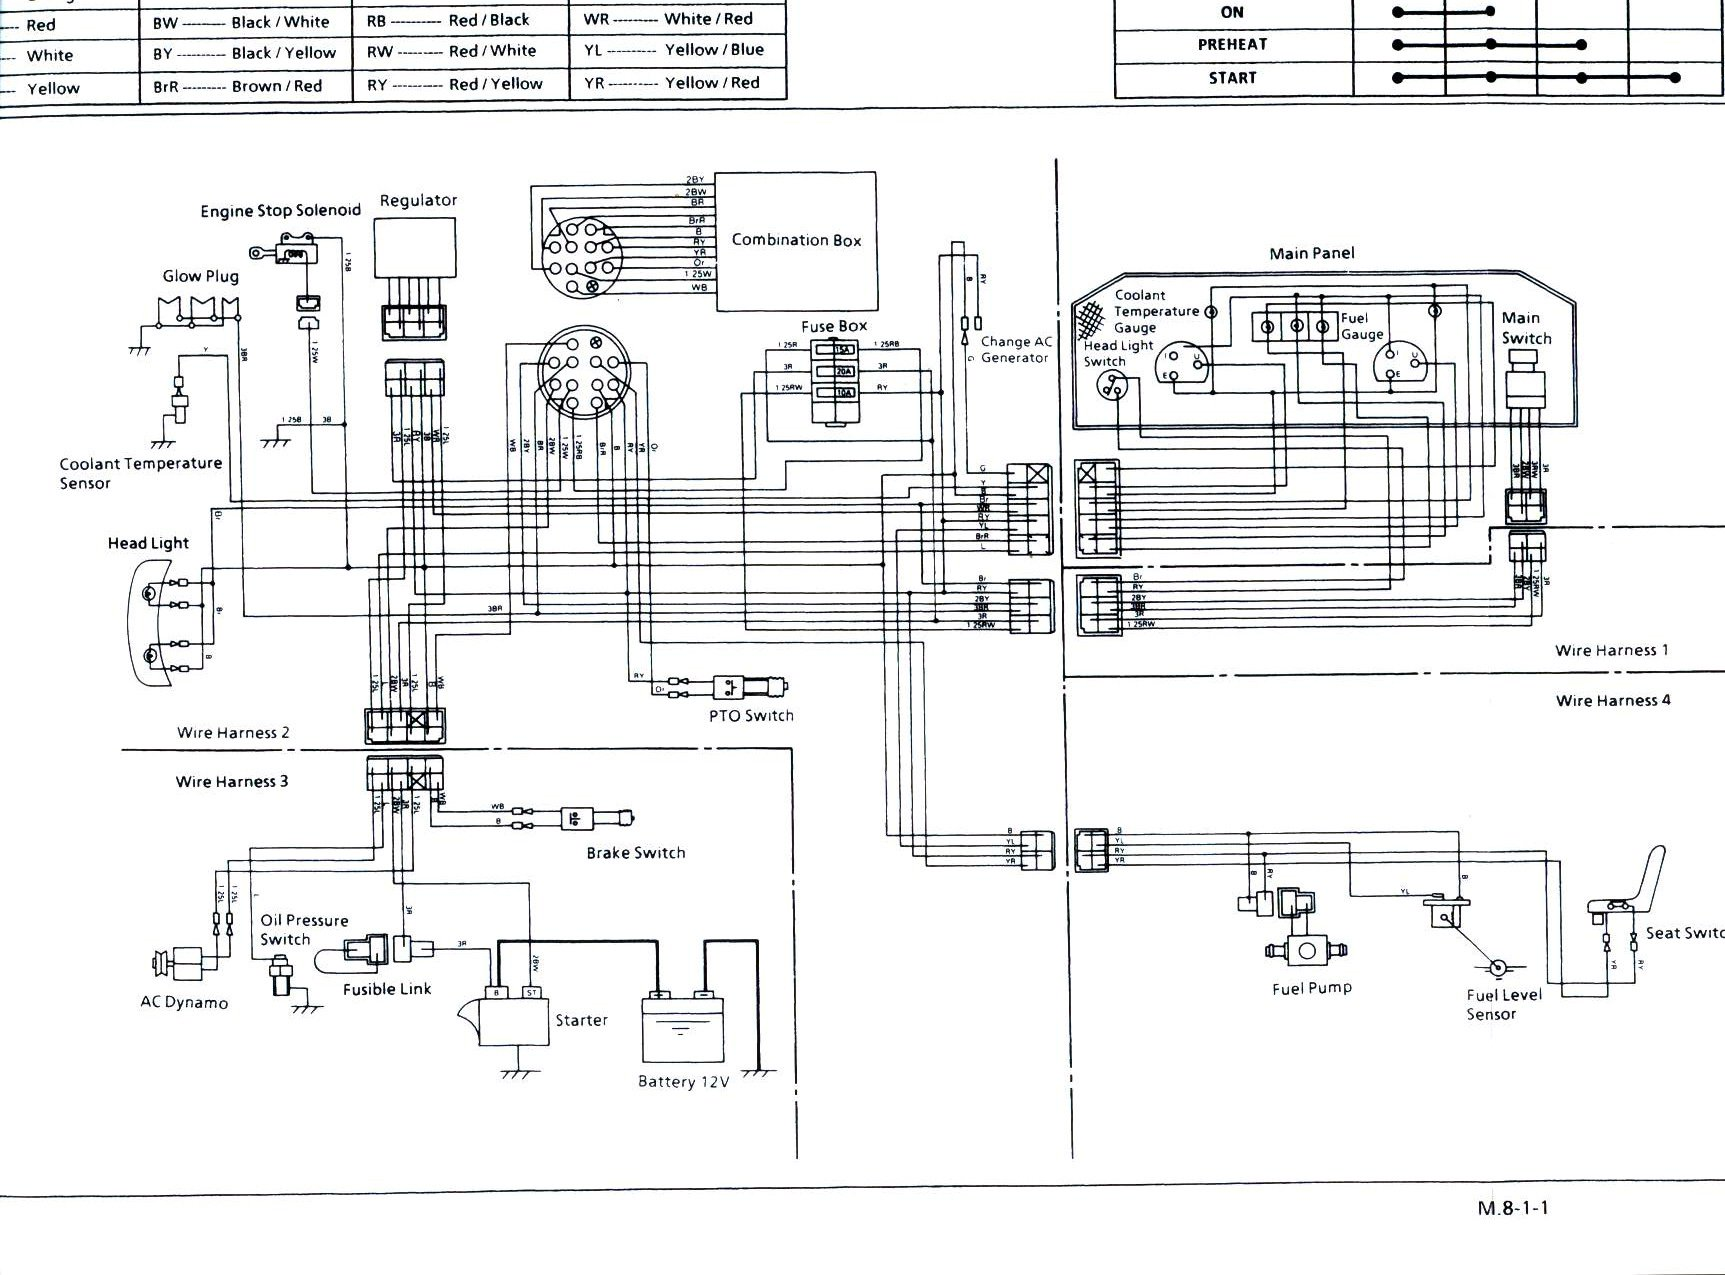 DIAGRAM] Kubota B7500 Wiring Diagram FULL Version HD Quality Wiring Diagram  - EARDIAGRAMS.ERACLEATURISMO.ITDiagram Database